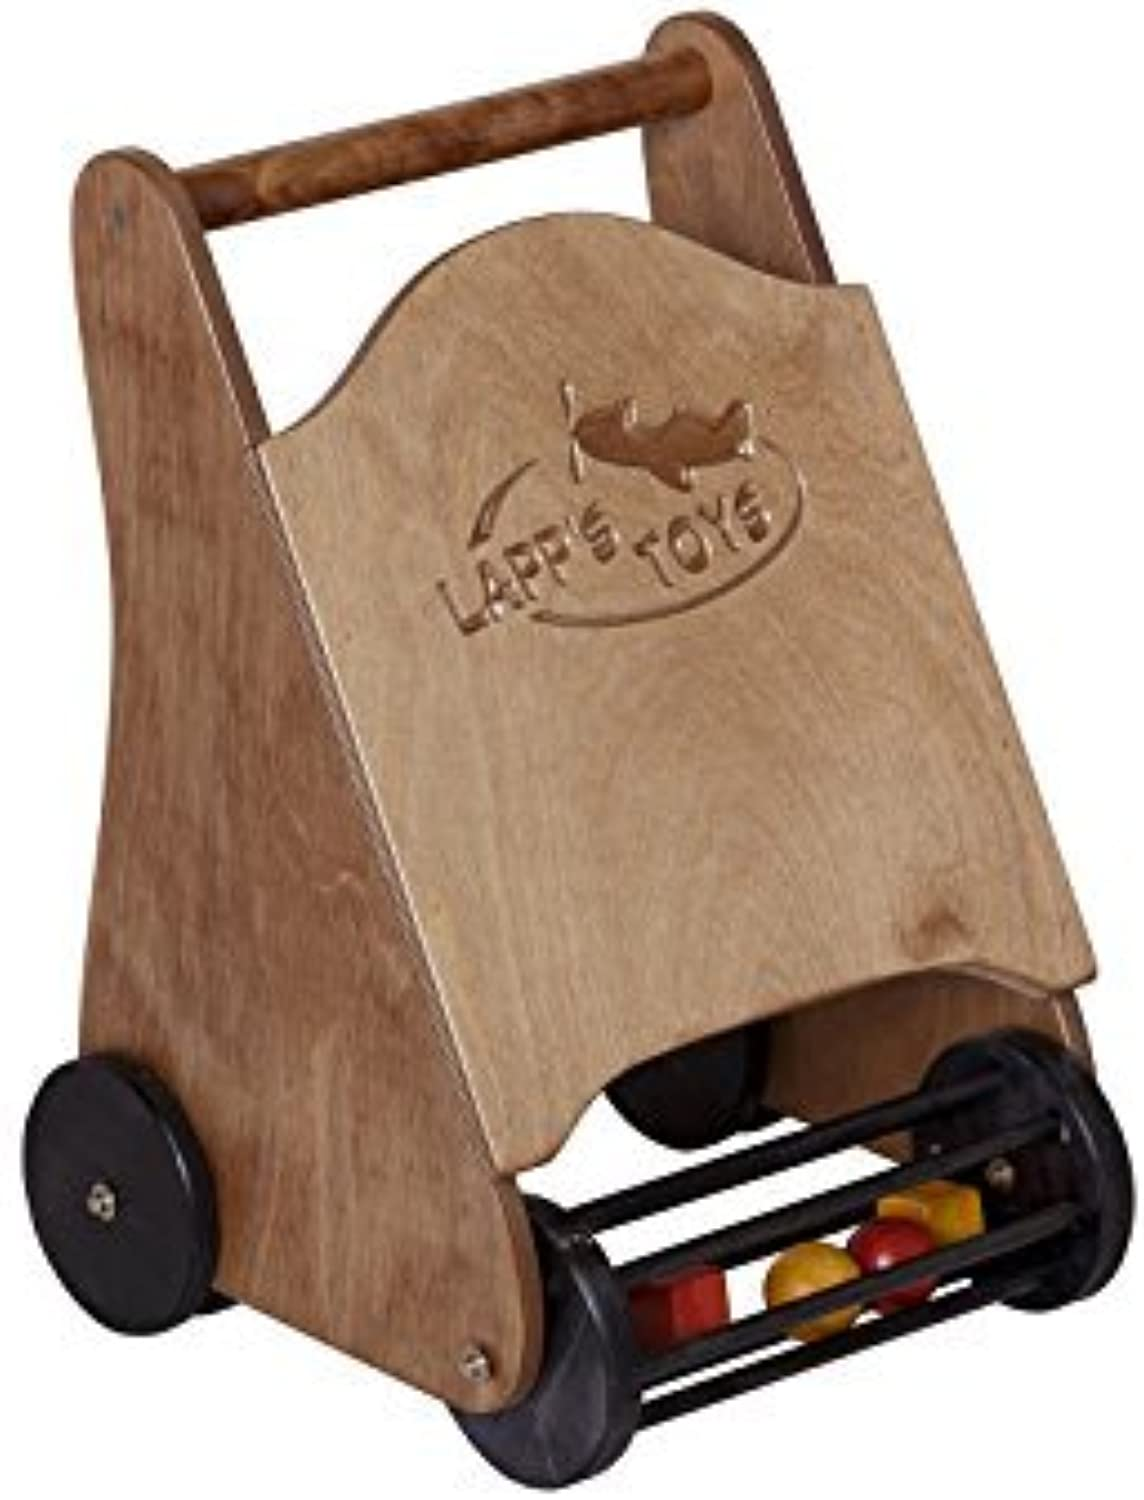 80% de descuento Wooden Walker Harvest Stain Amish Made USA by by by Furniture Barn USA  barato en alta calidad